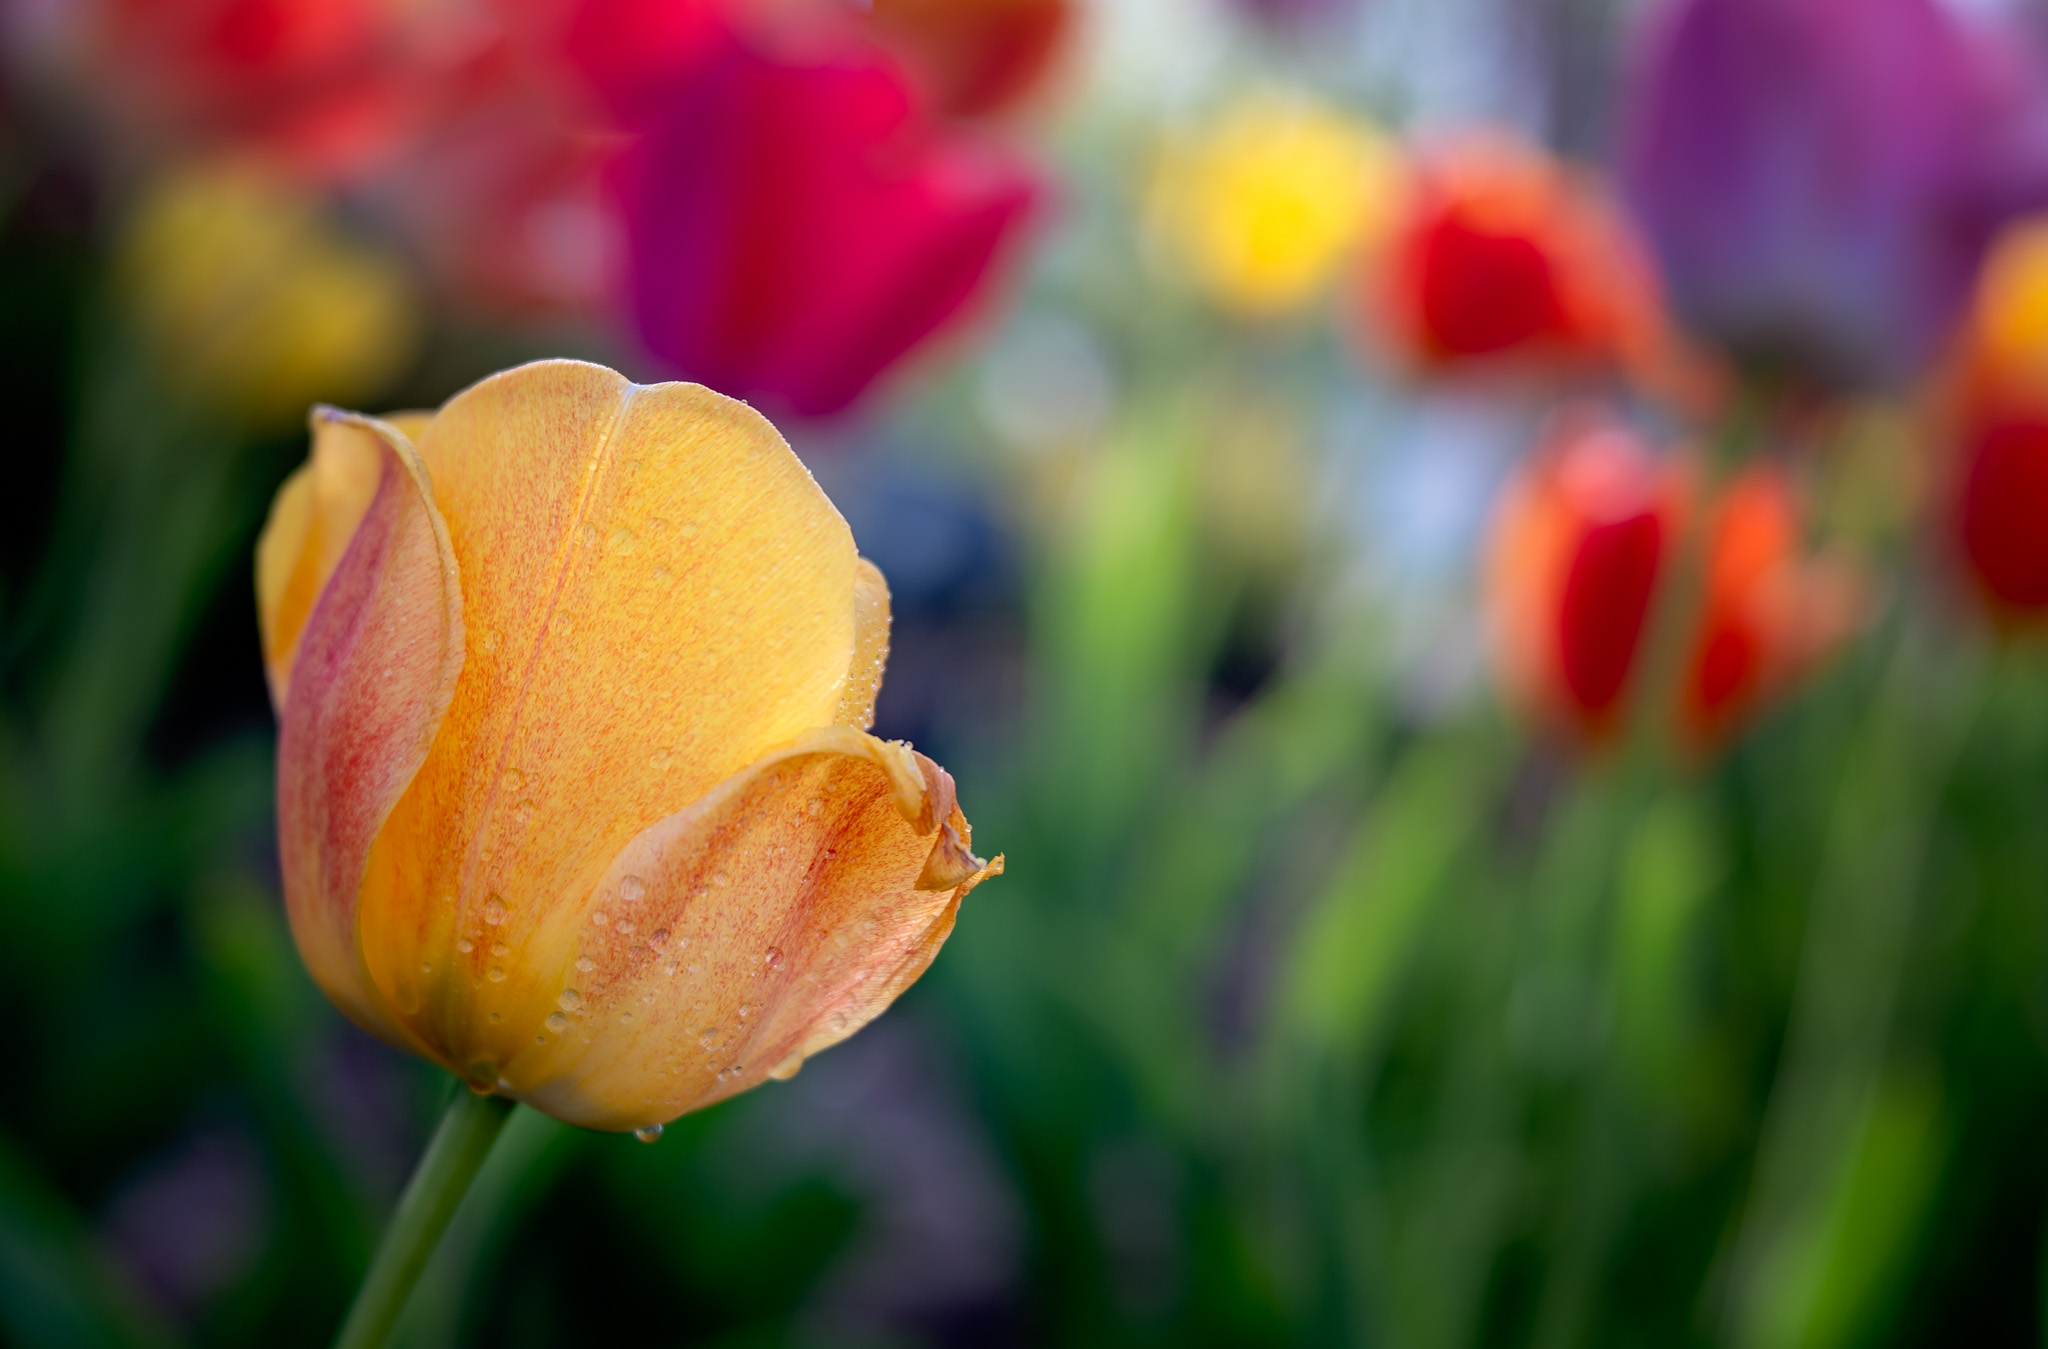 Tulips with Lensbaby3